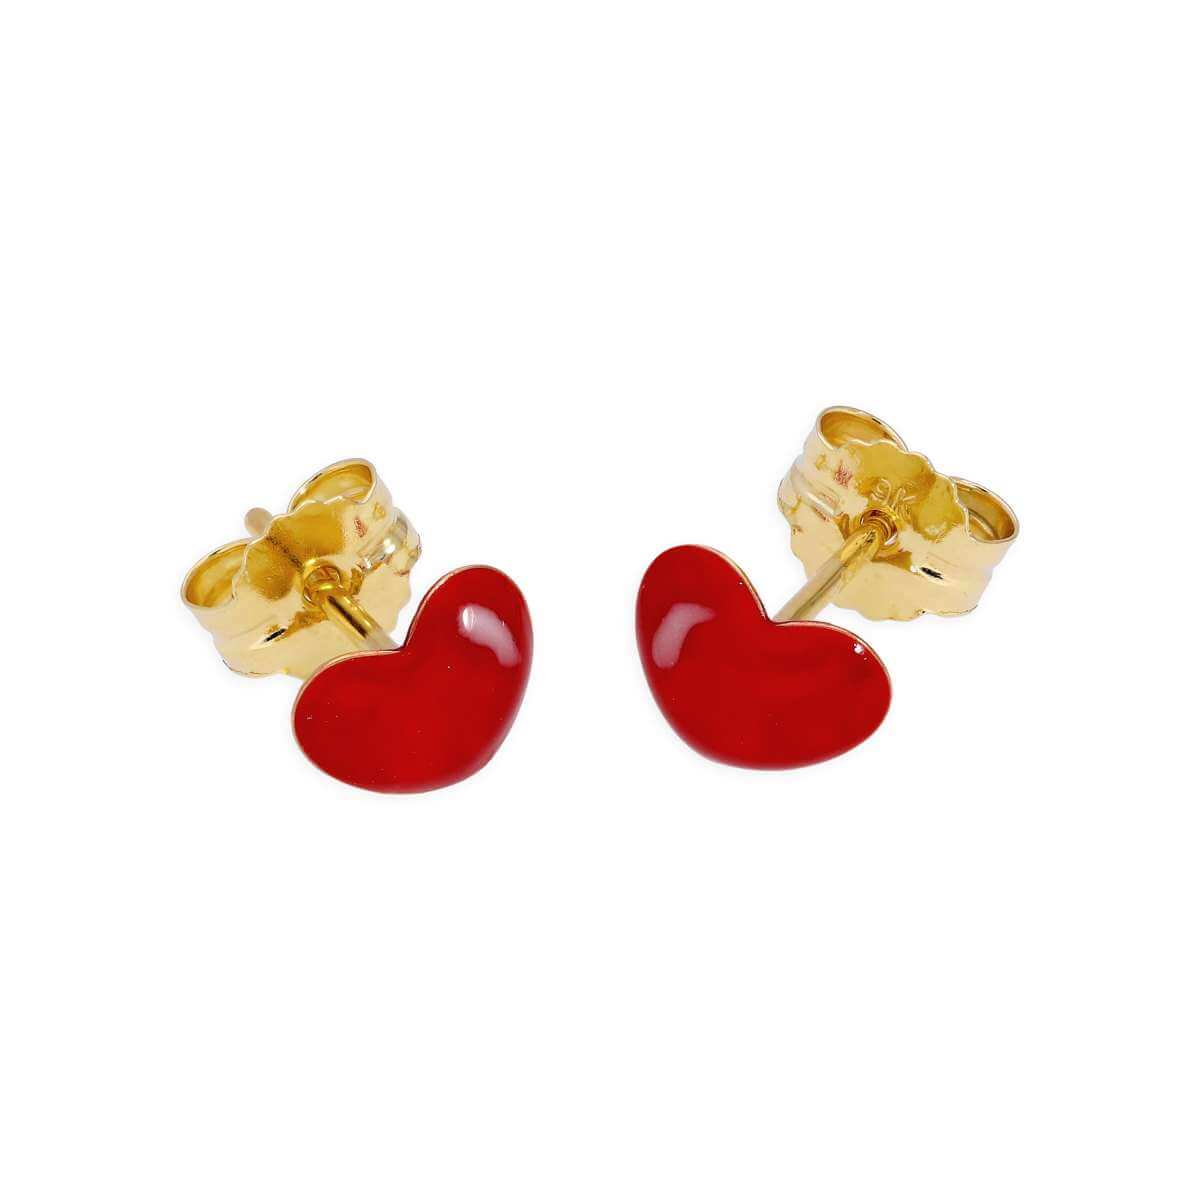 9ct Gold & Red Enamel Heart Stud Earrings